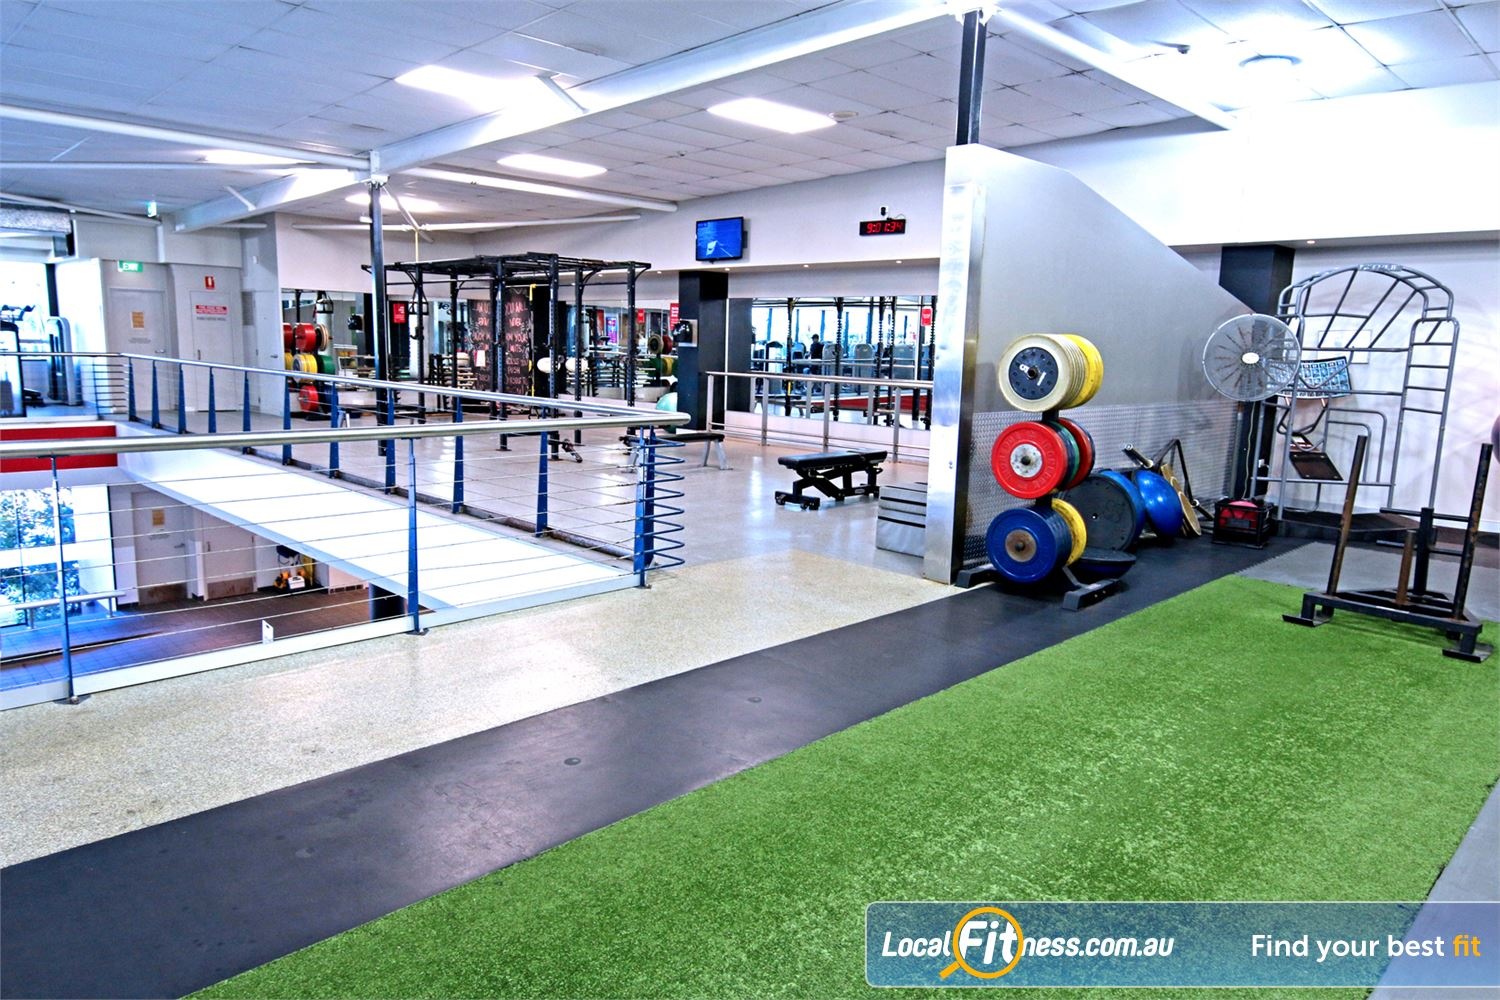 Fitness First Near Wooloowin The spacious functional freestyle area with functional training rig.